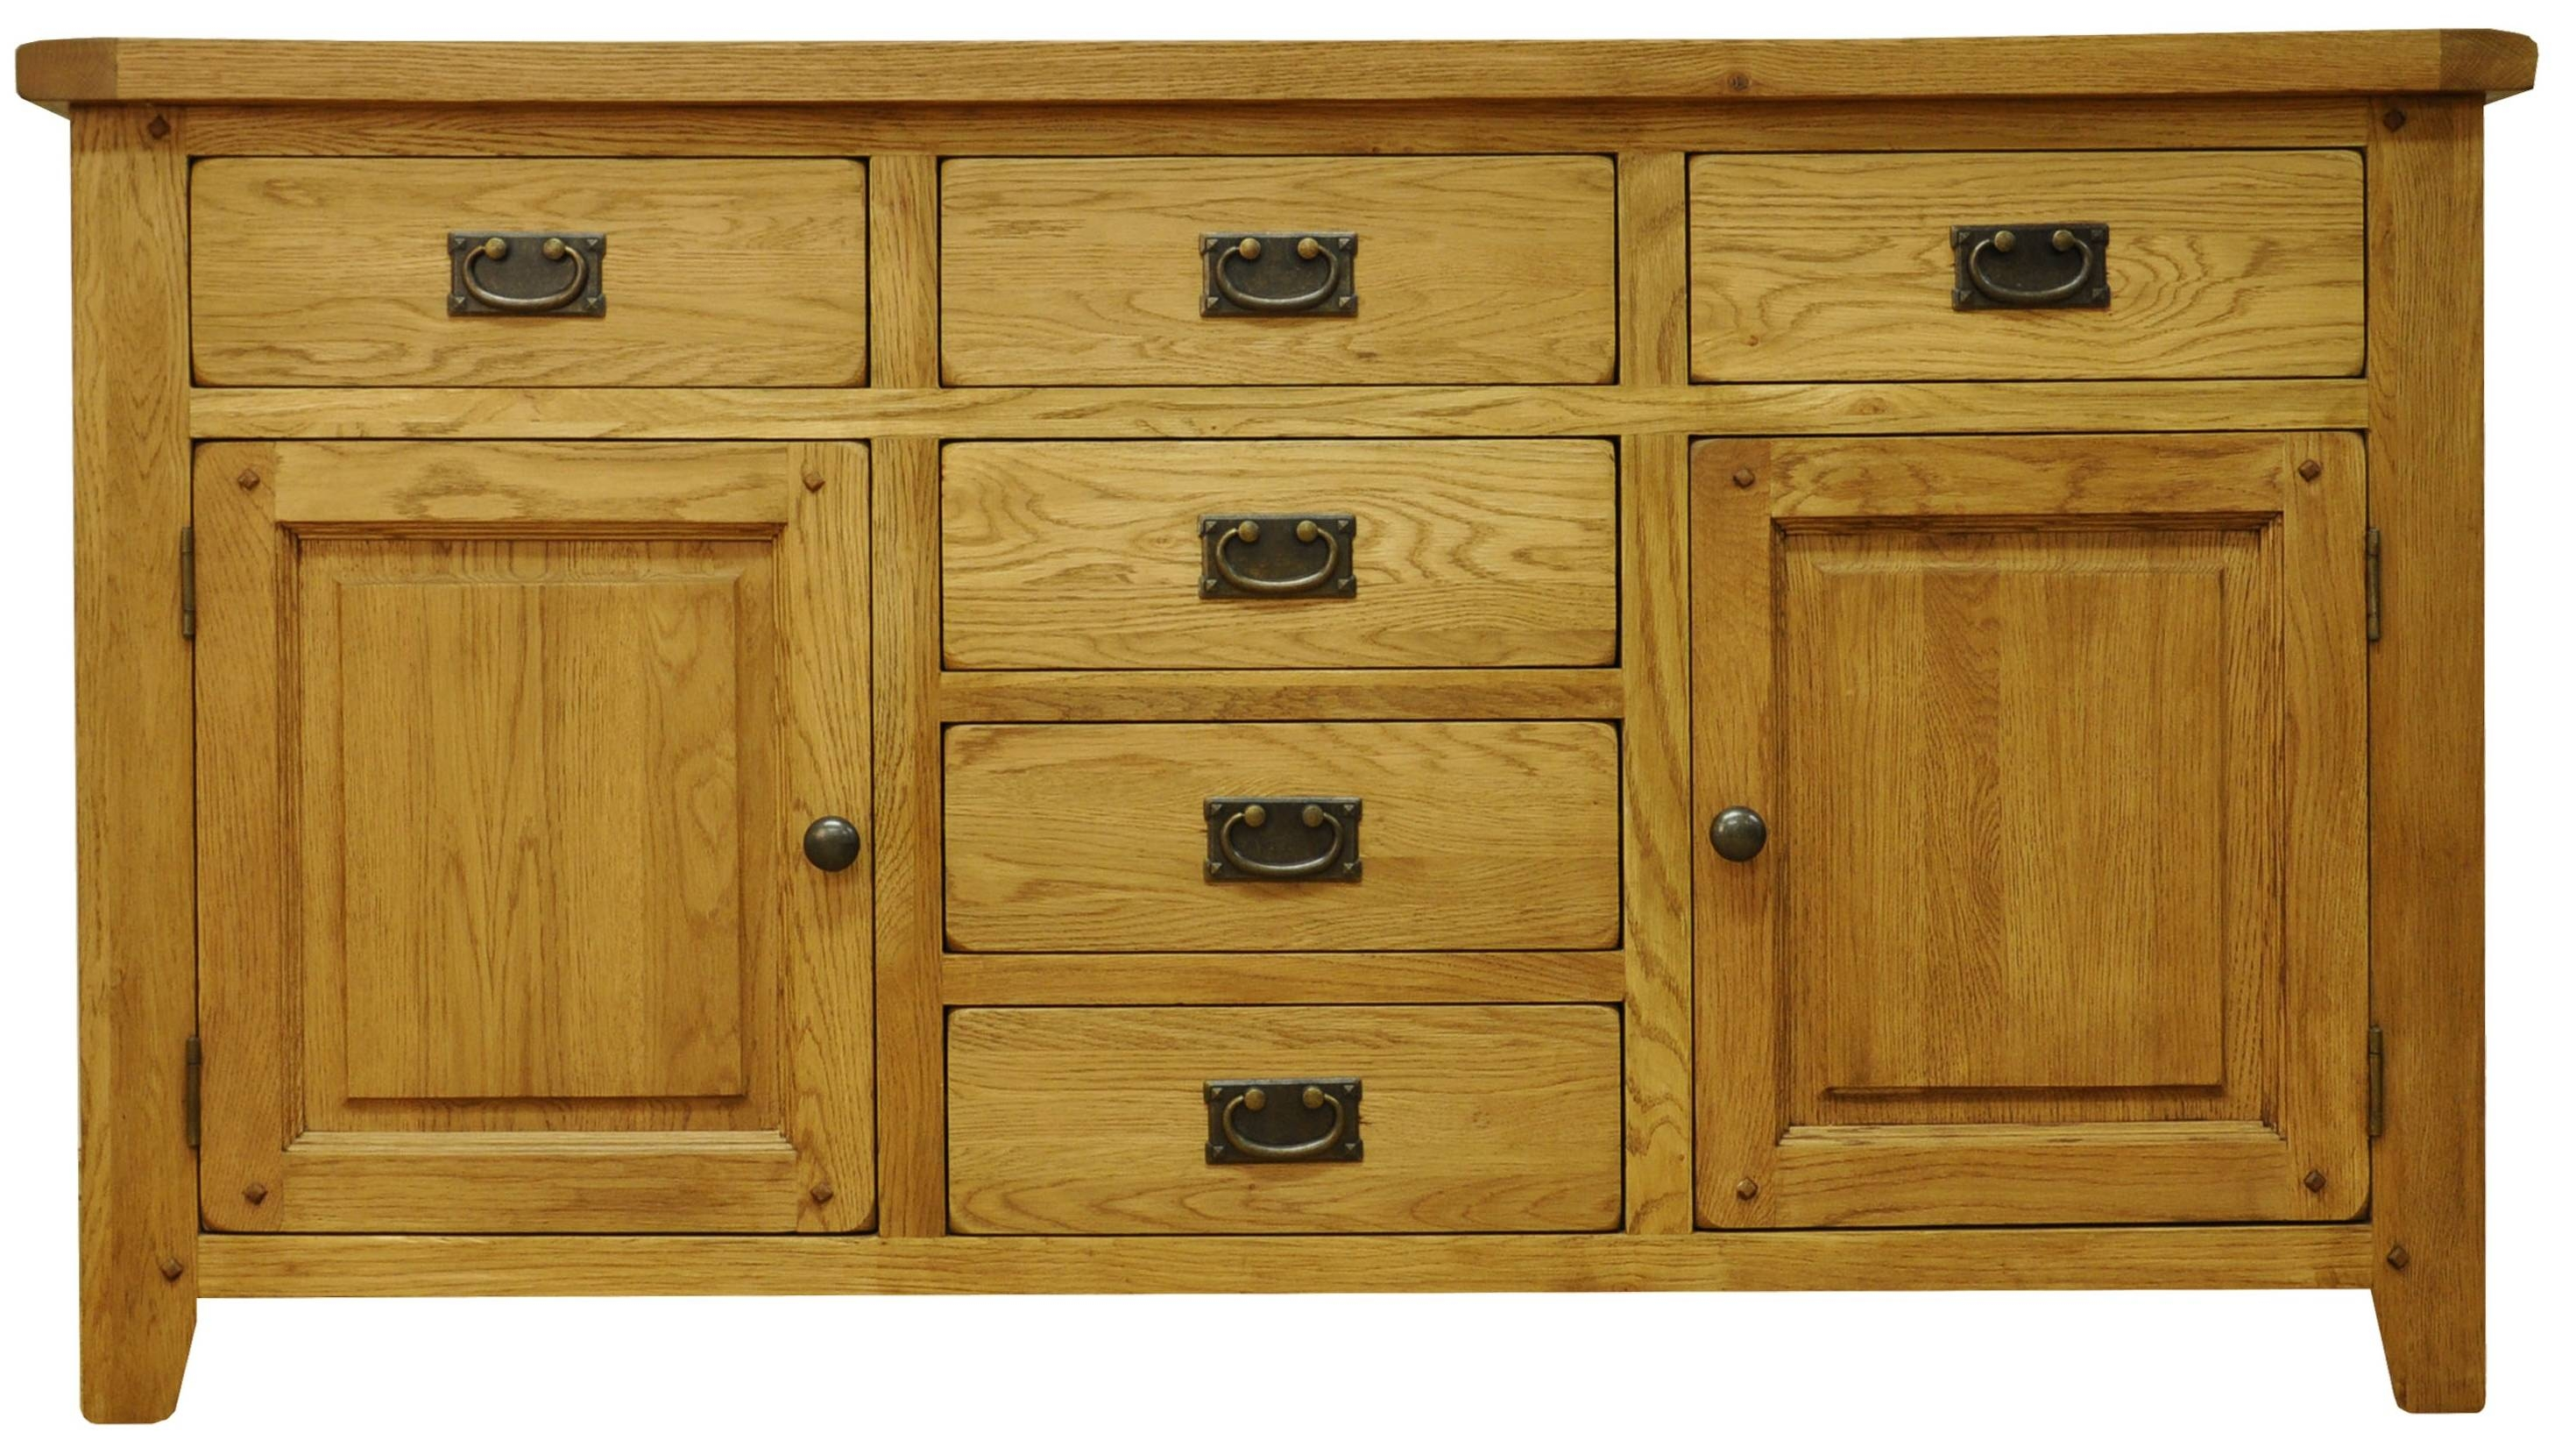 Oldbury Rustic Oak Sideboard With 2 Doors And 6 Drawersstanton throughout Oak Sideboards (Image 17 of 30)